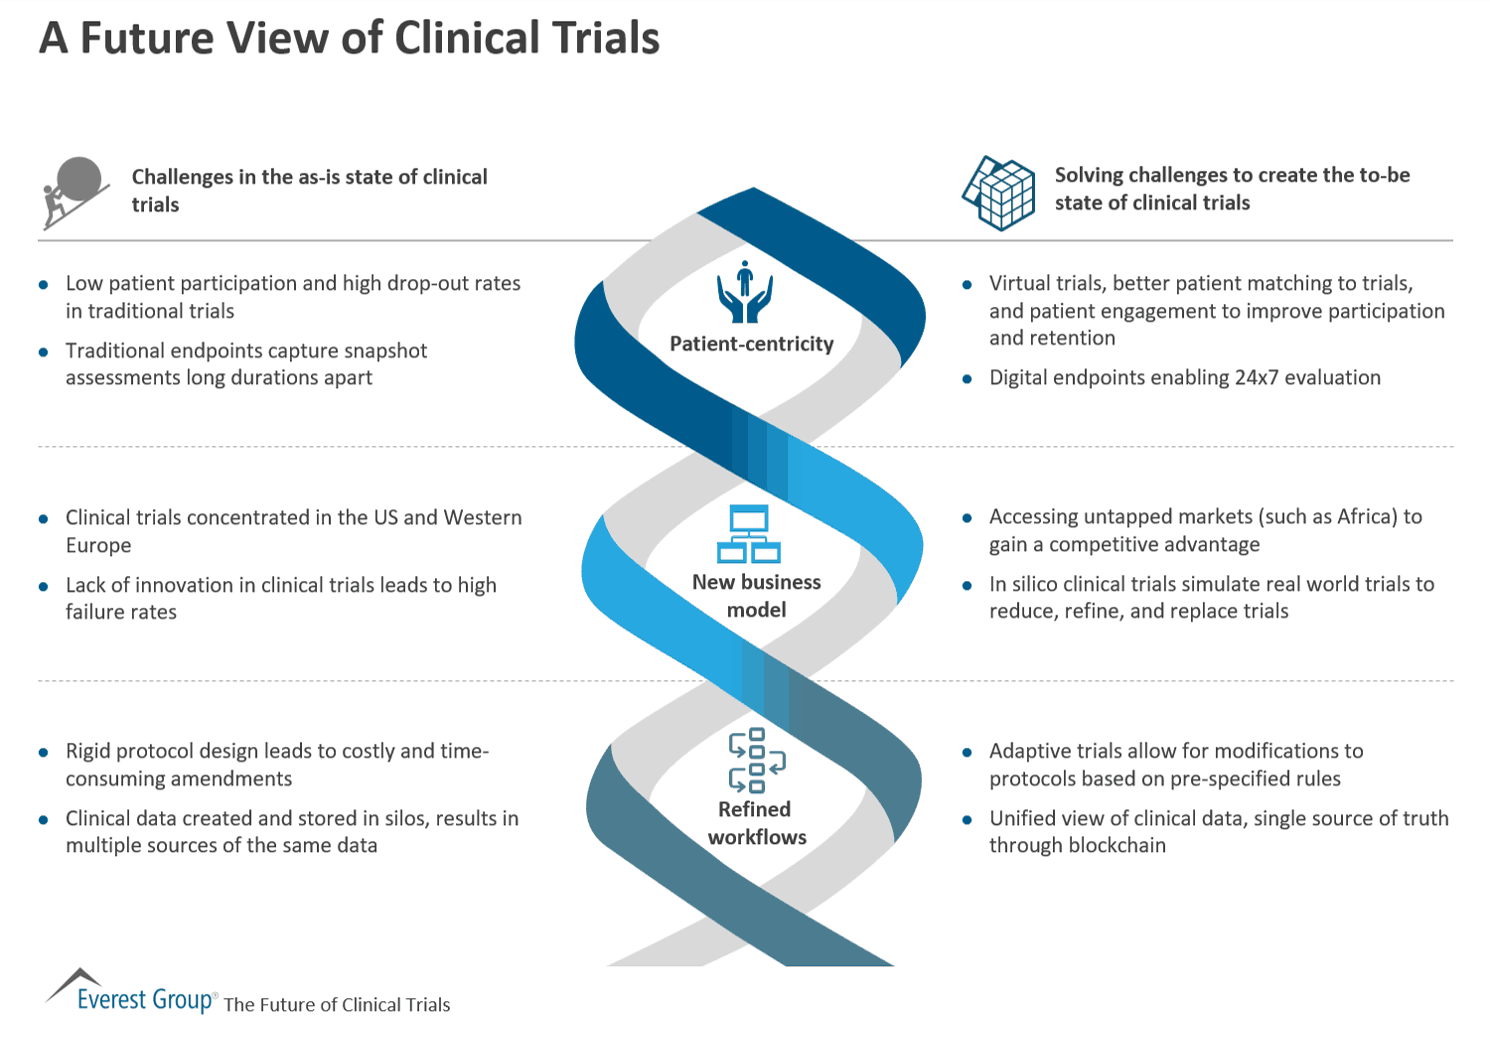 A Future View of Clinical Trials